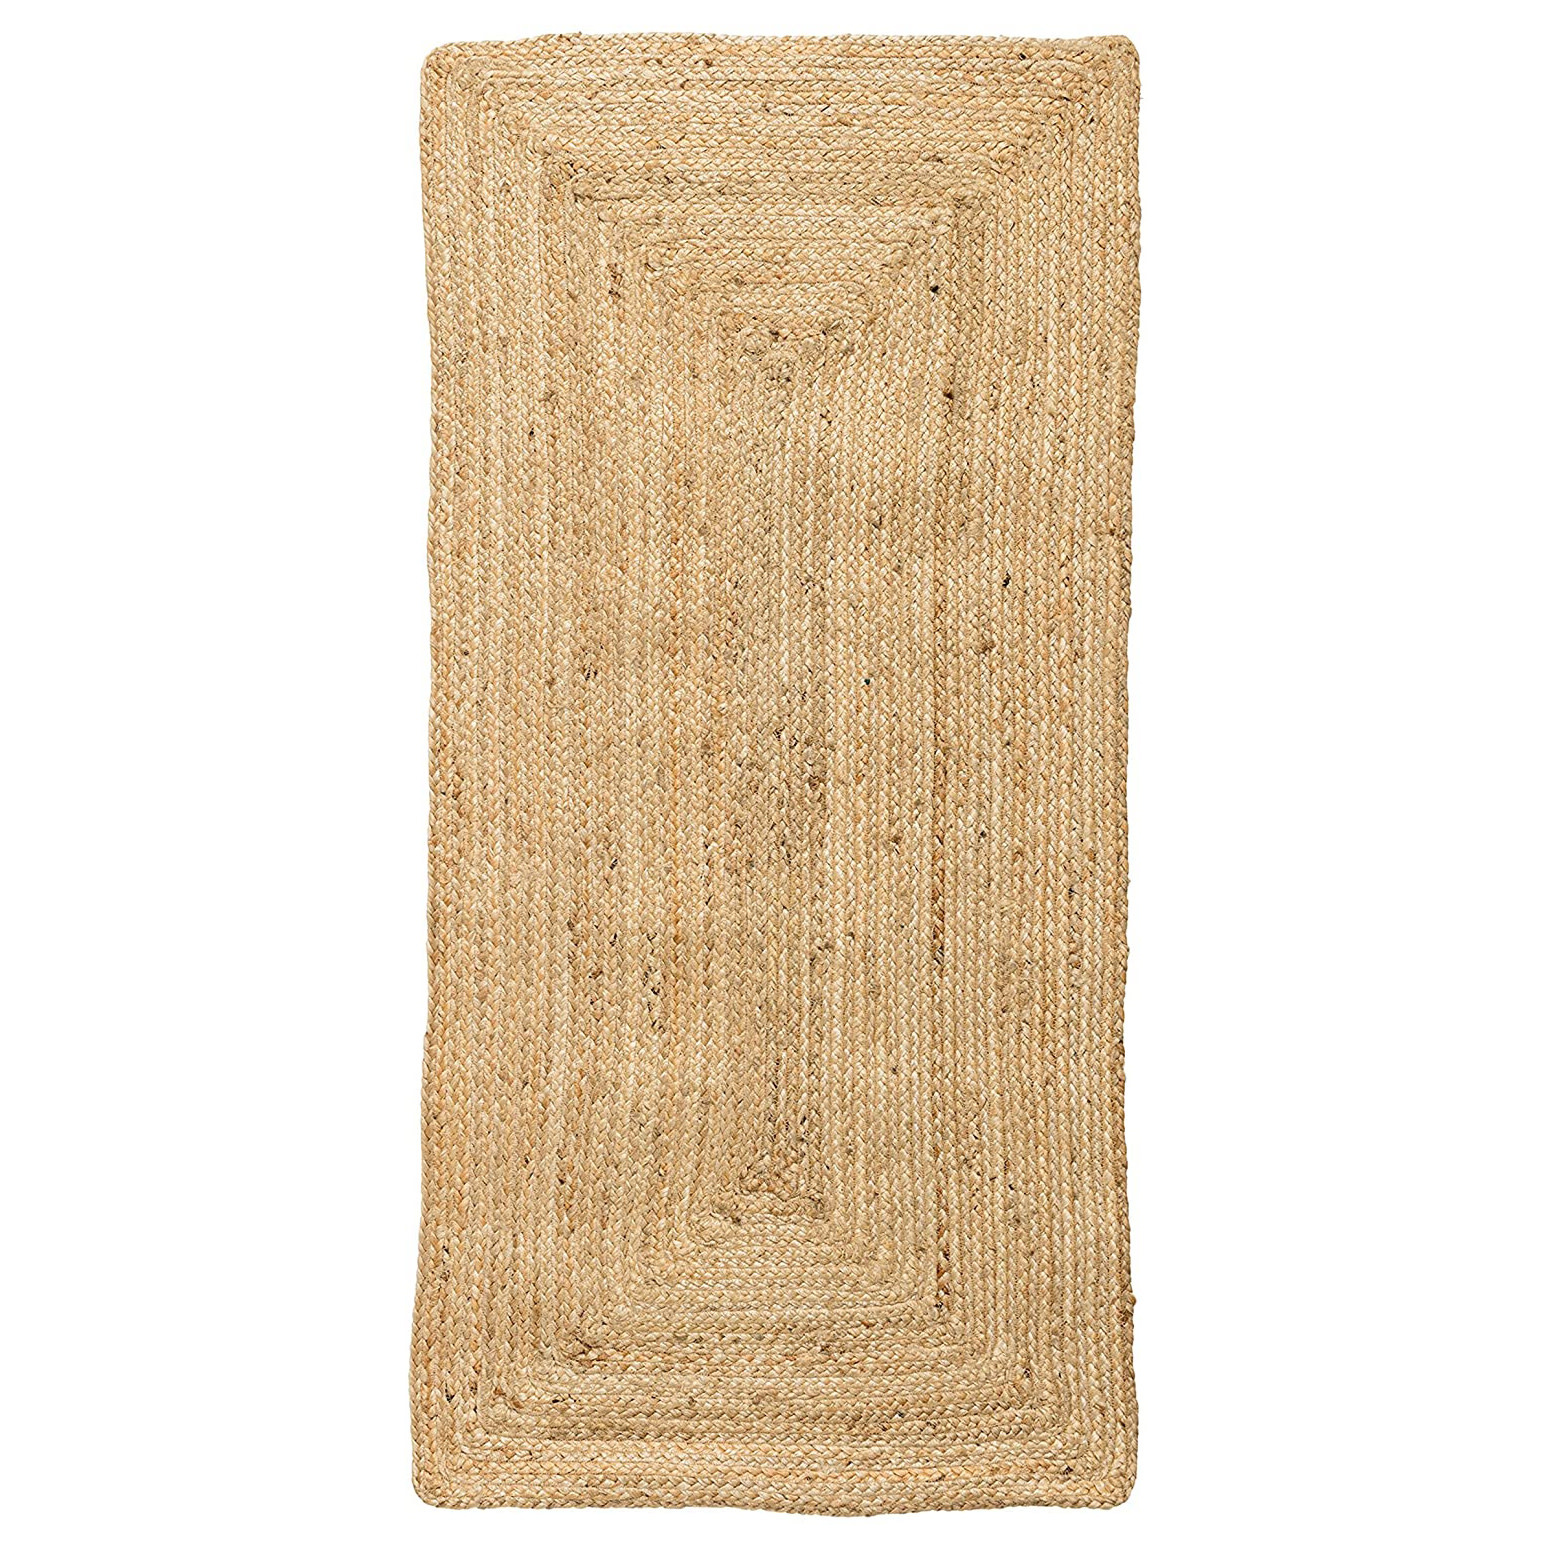 Natural Seagrass Rug 2' X 4'